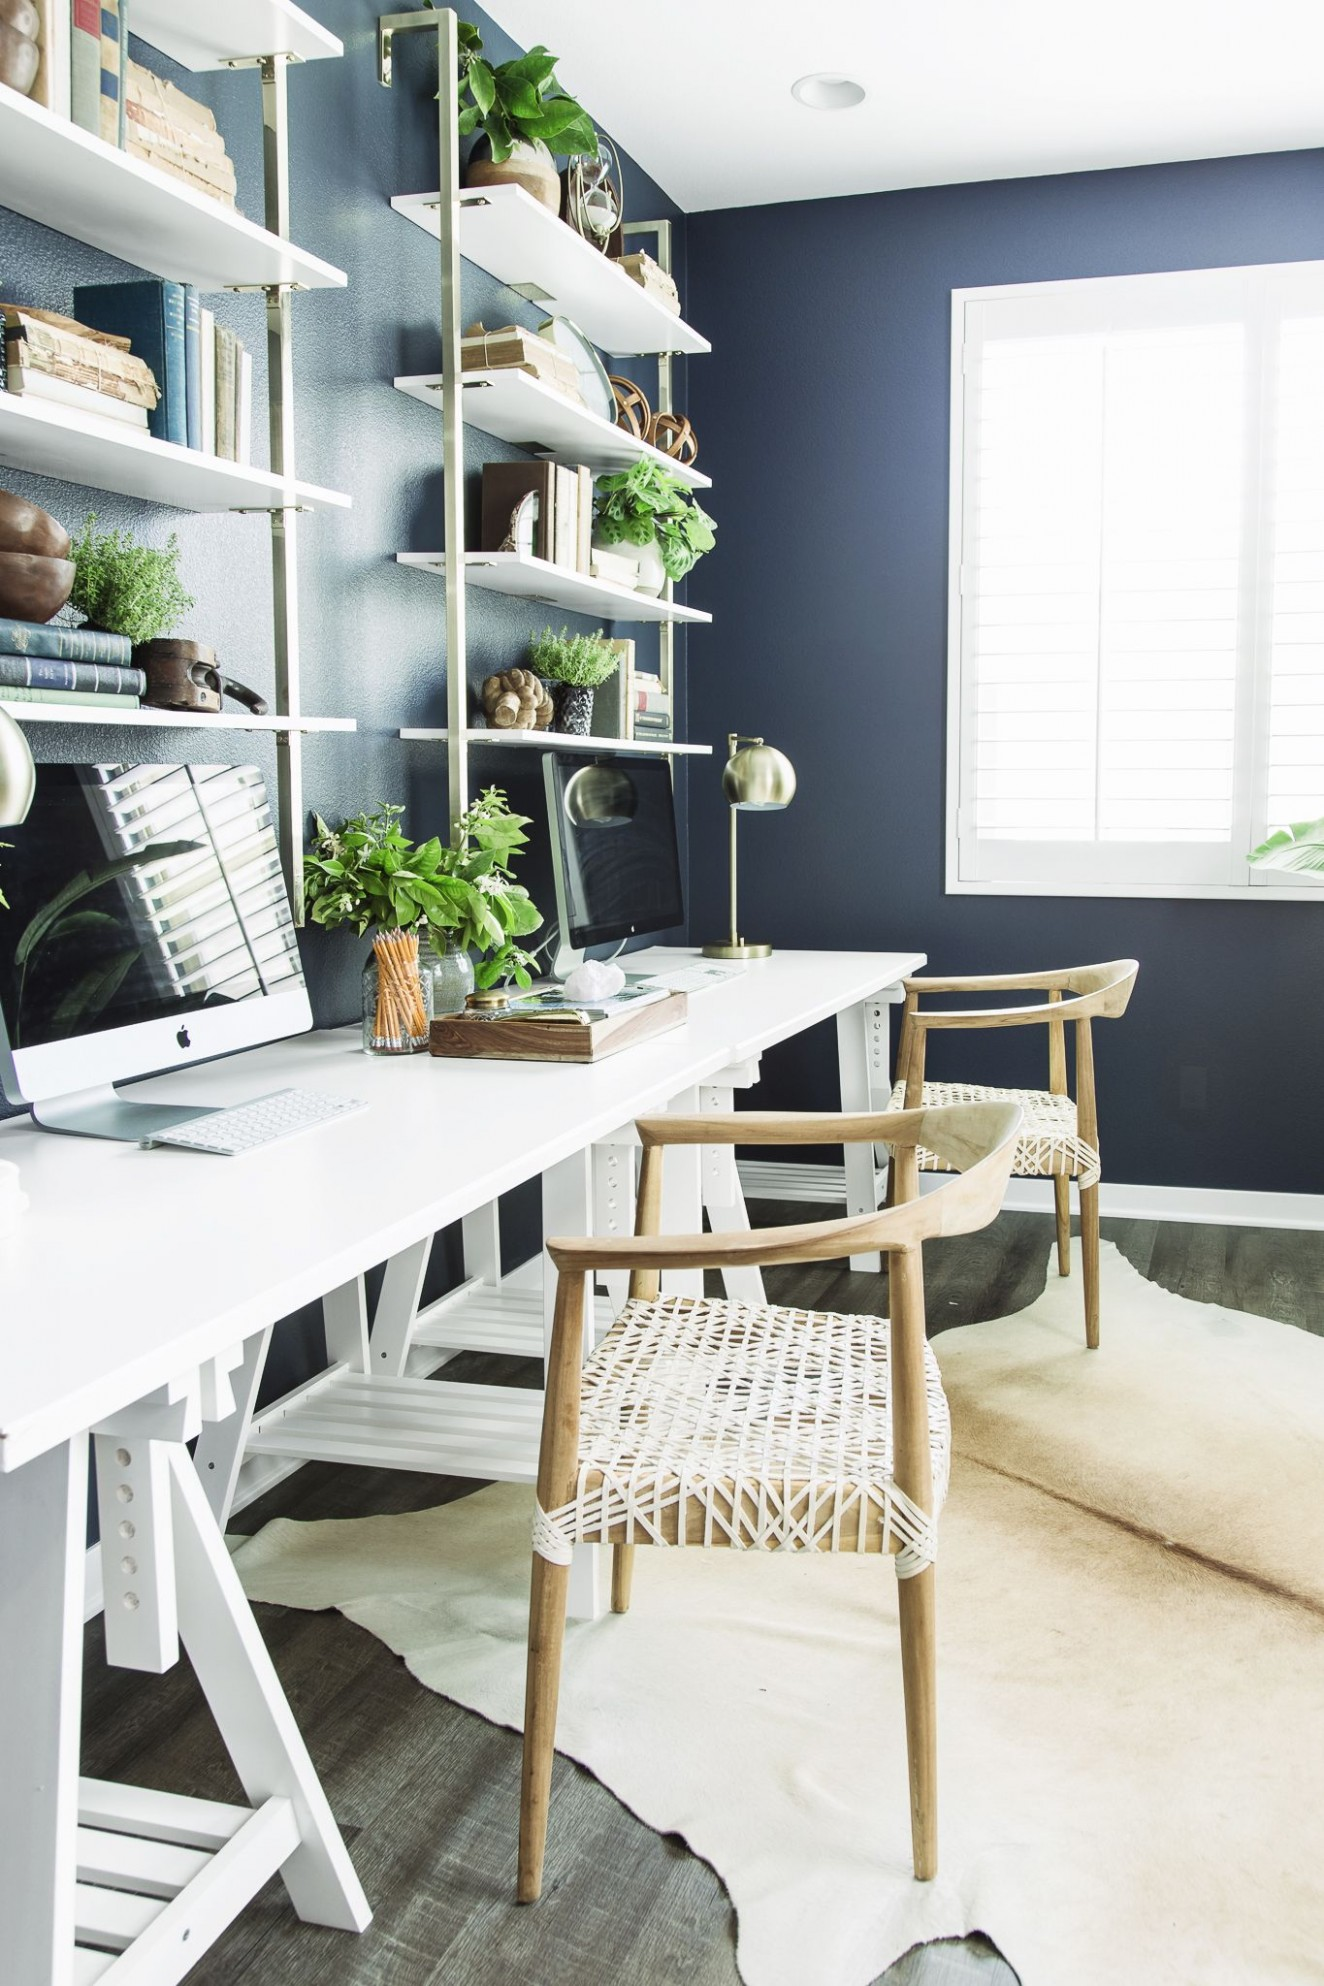 8 Best Home Office Ideas - How to Decorate a Home Office - Home Office Design Ideas Uk